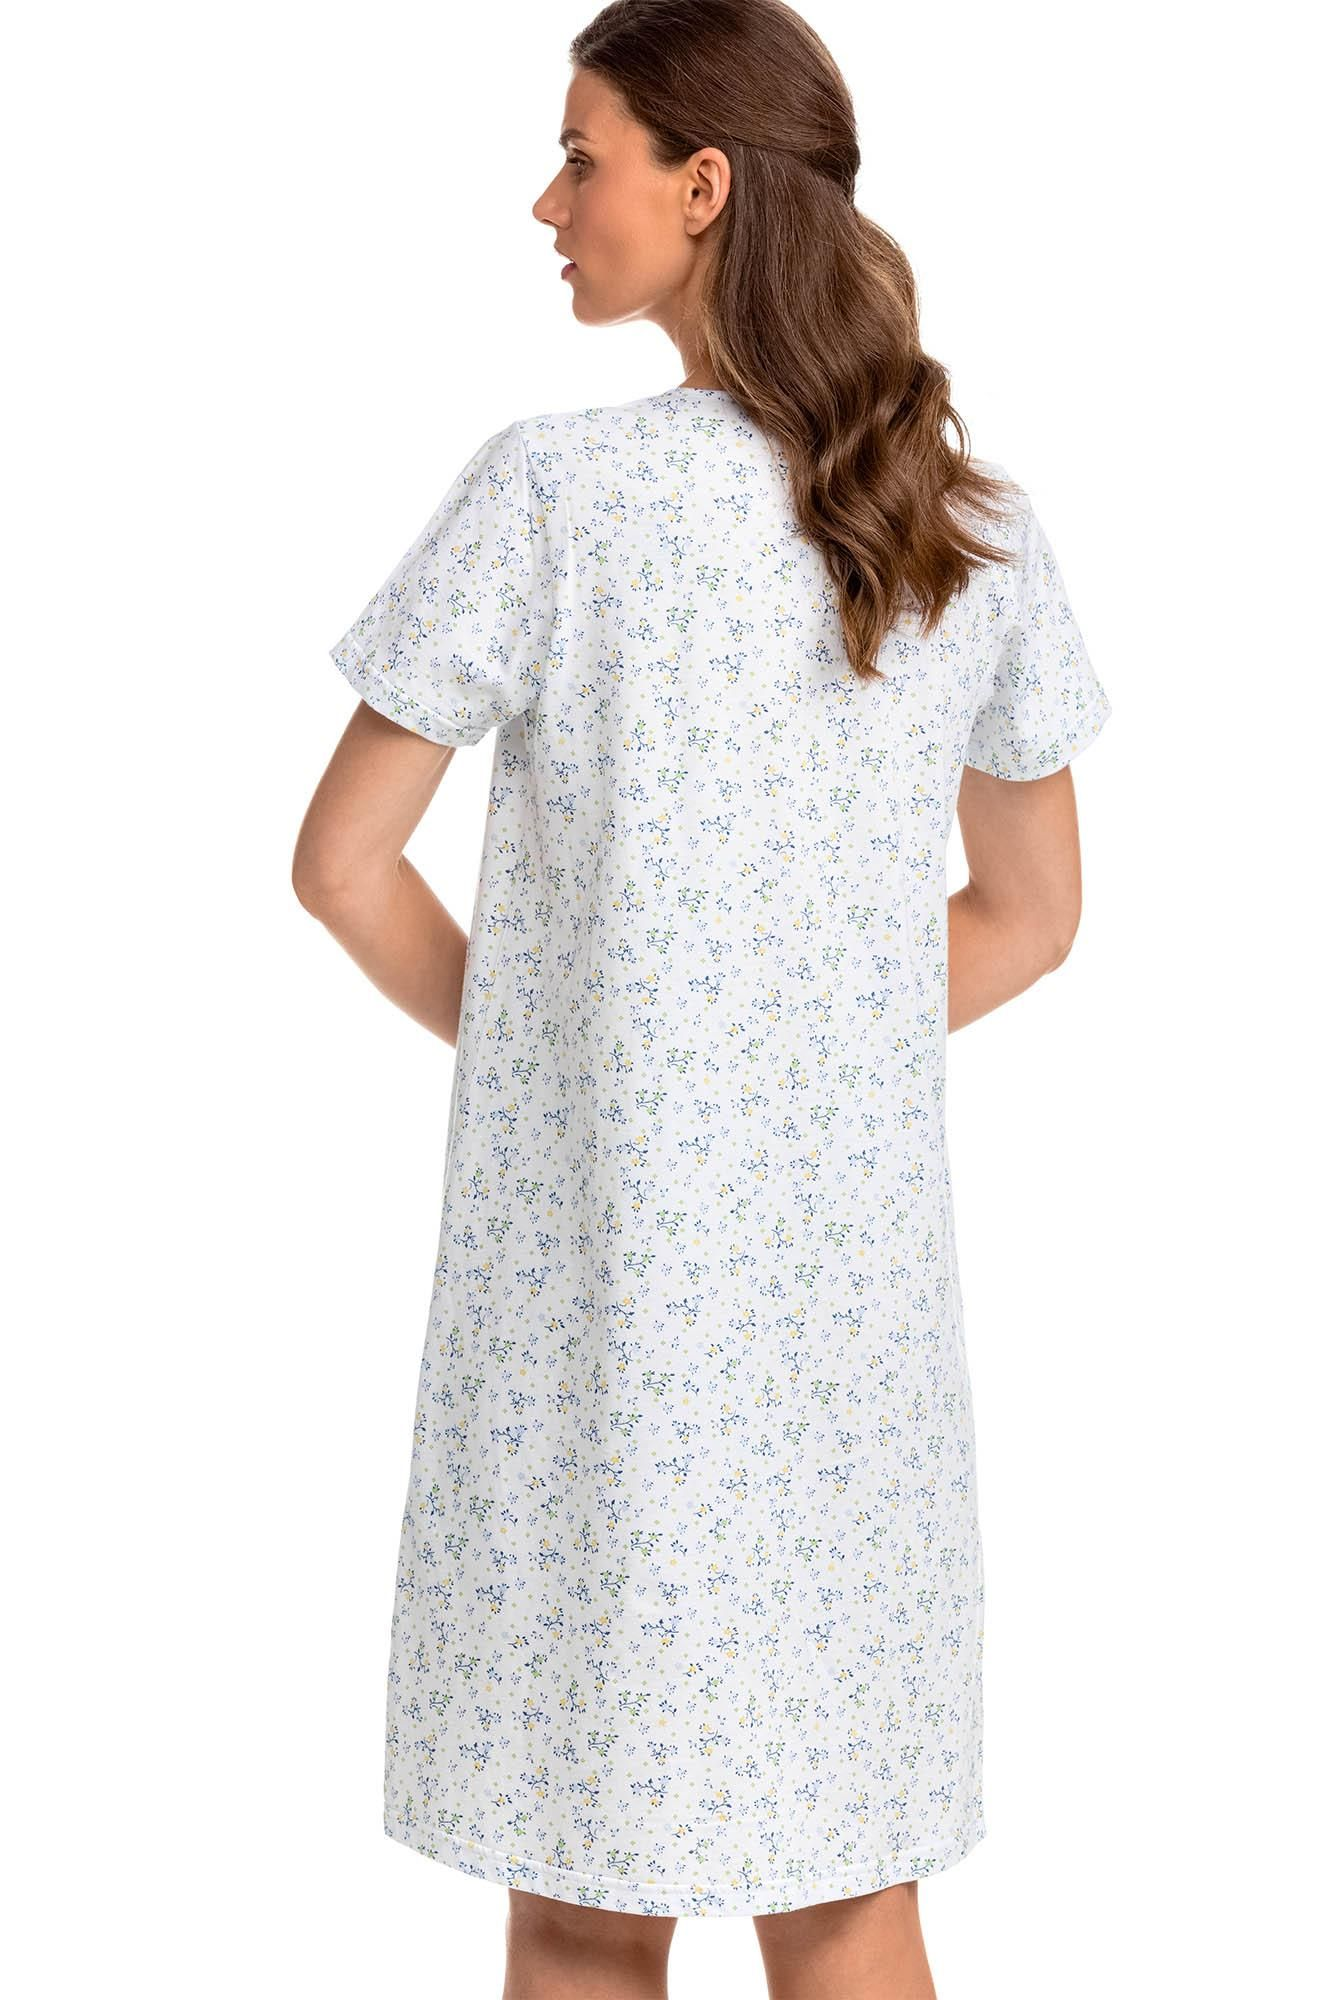 Nightgown with Button Placket